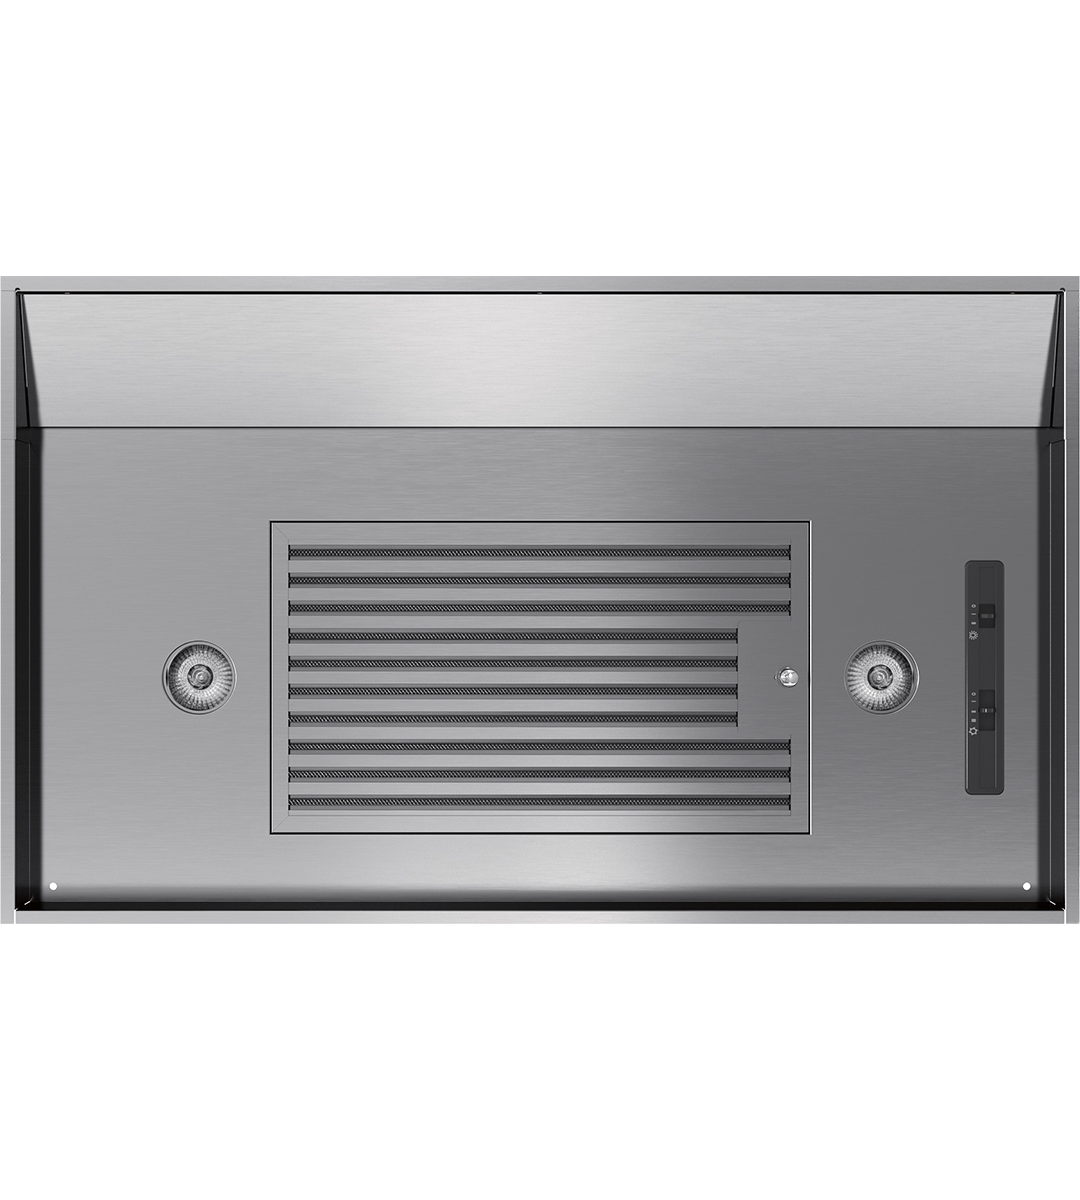 Zephyr Ventilation accessory 34inch in Stainless Steel color showcased by Corbeil Electro Store